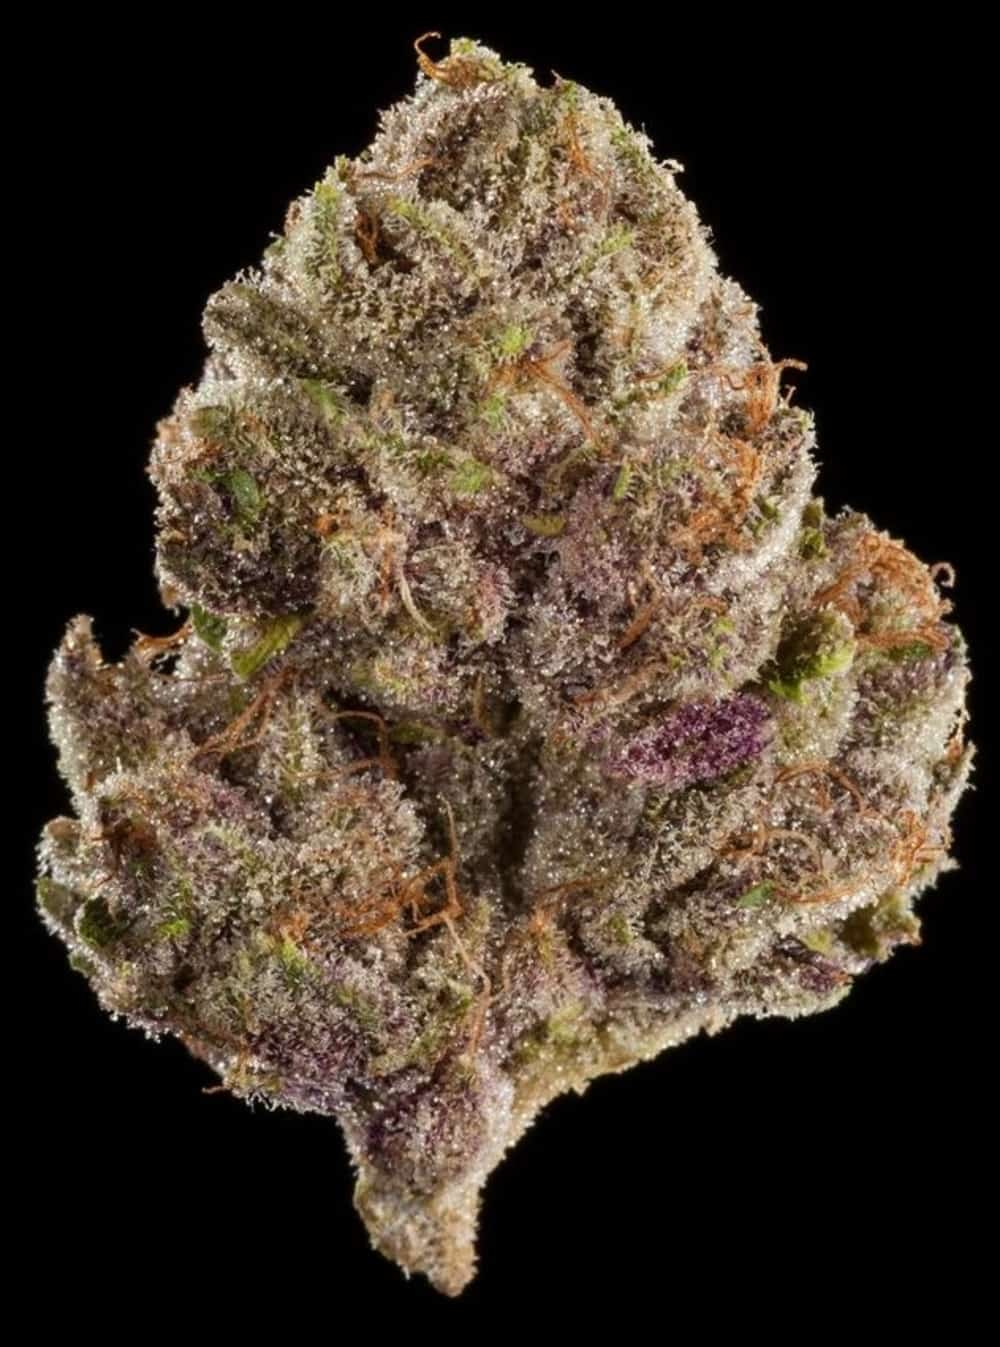 Winners of the 2018 World Cannabis Cup